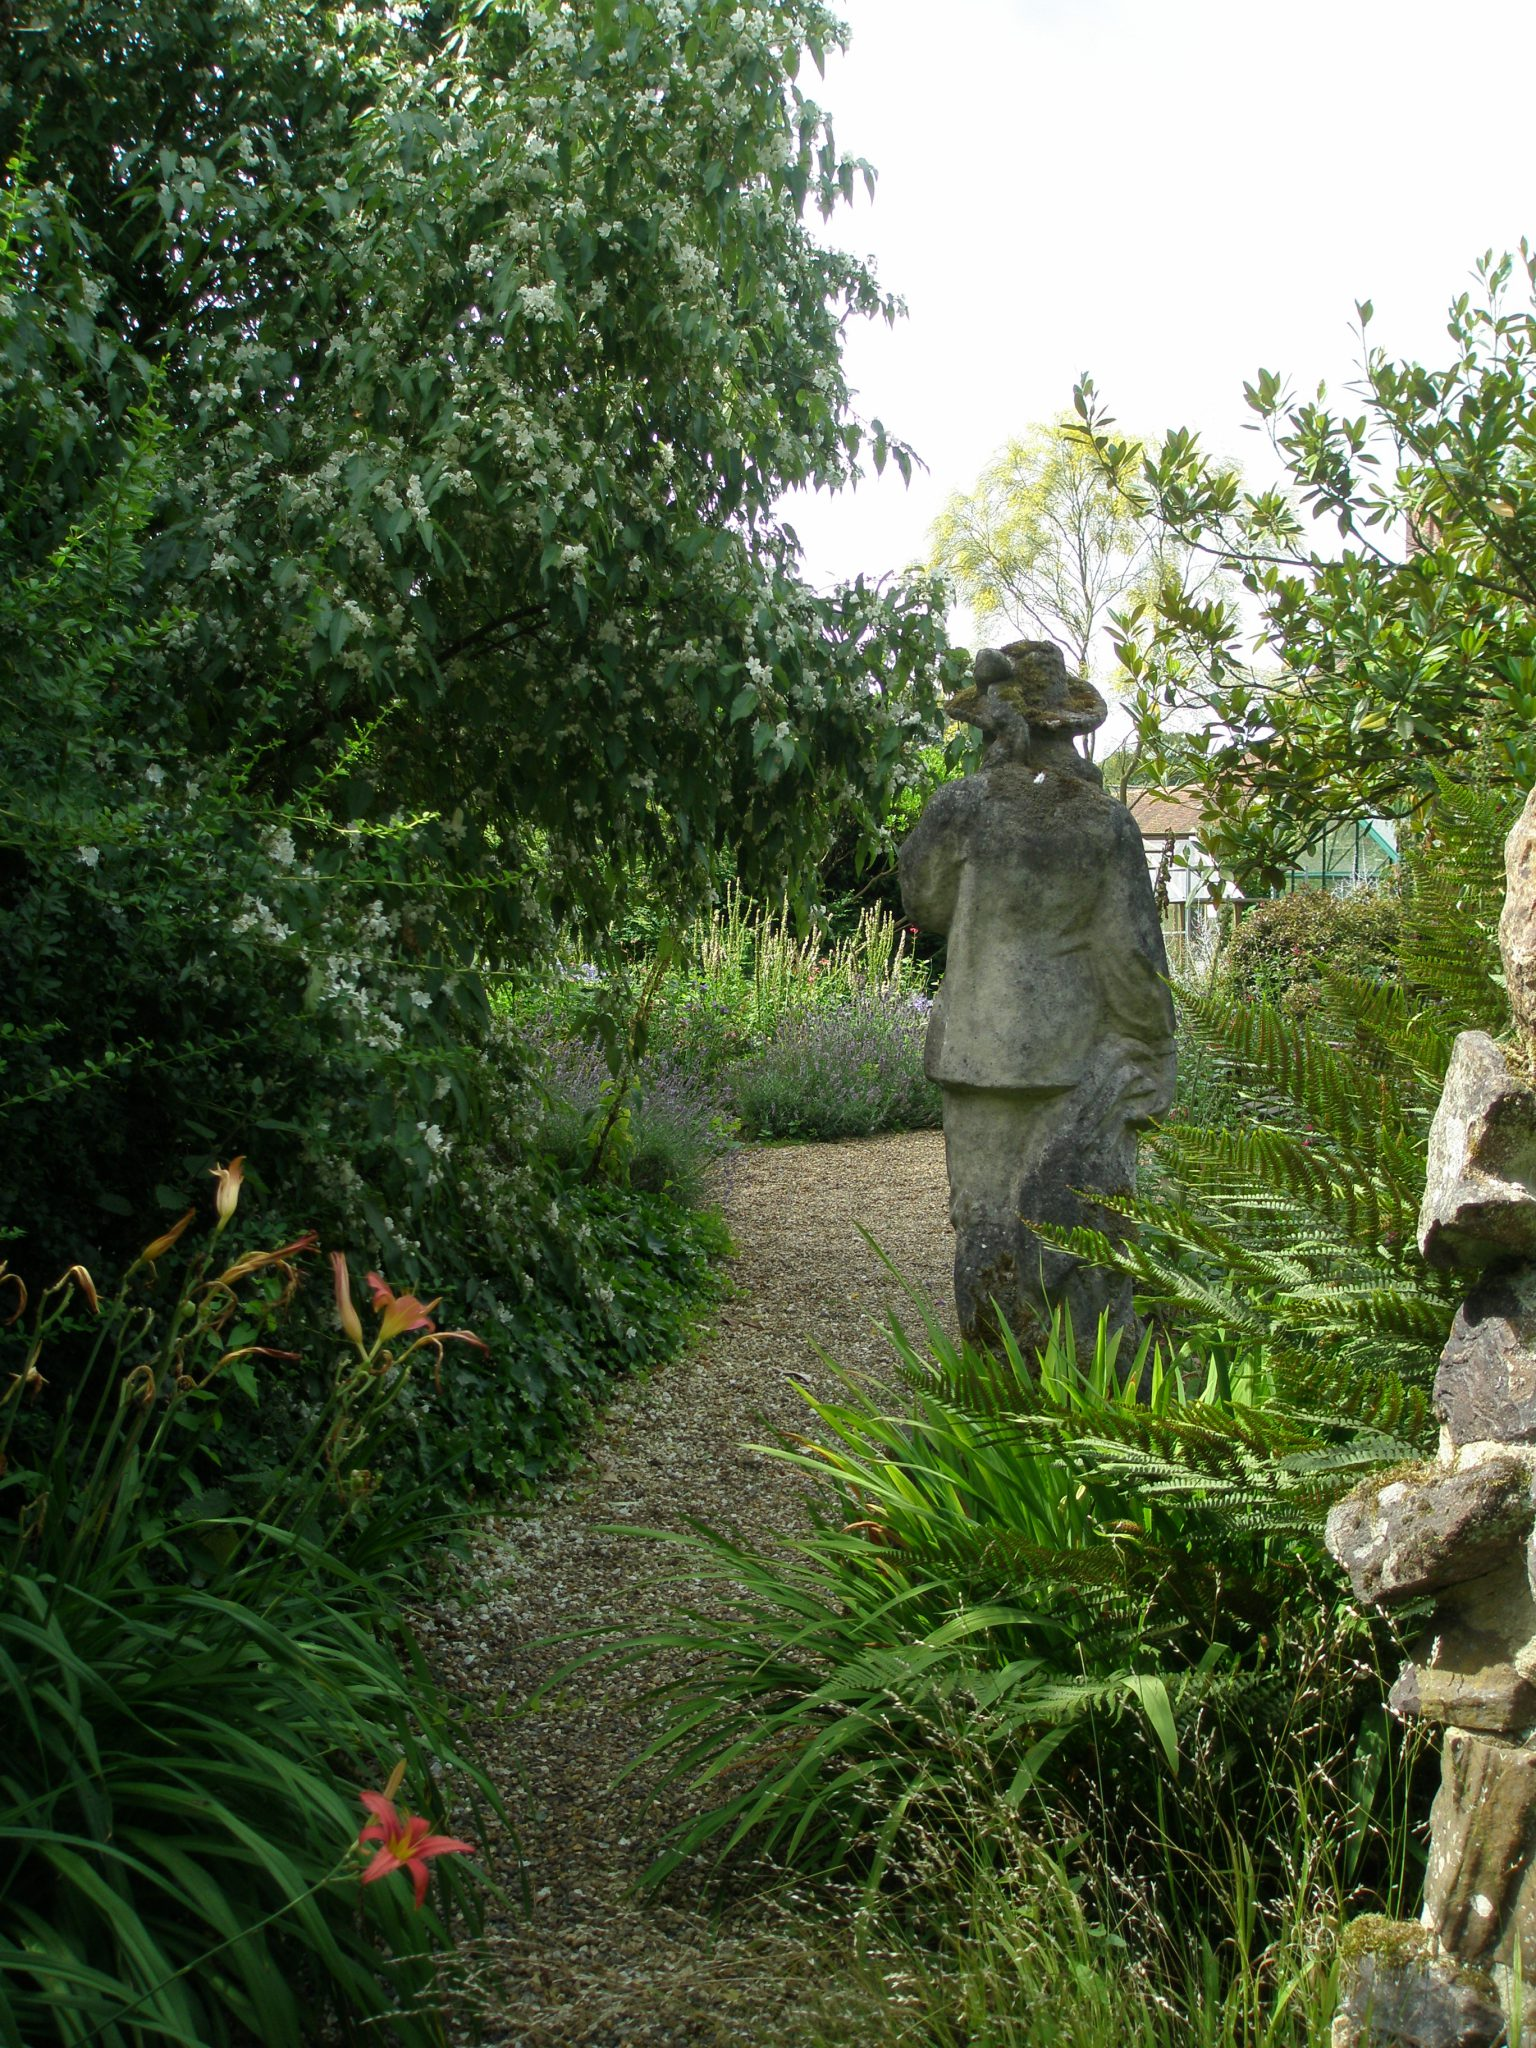 The only piece of figurative statuary that I saw in the Garden